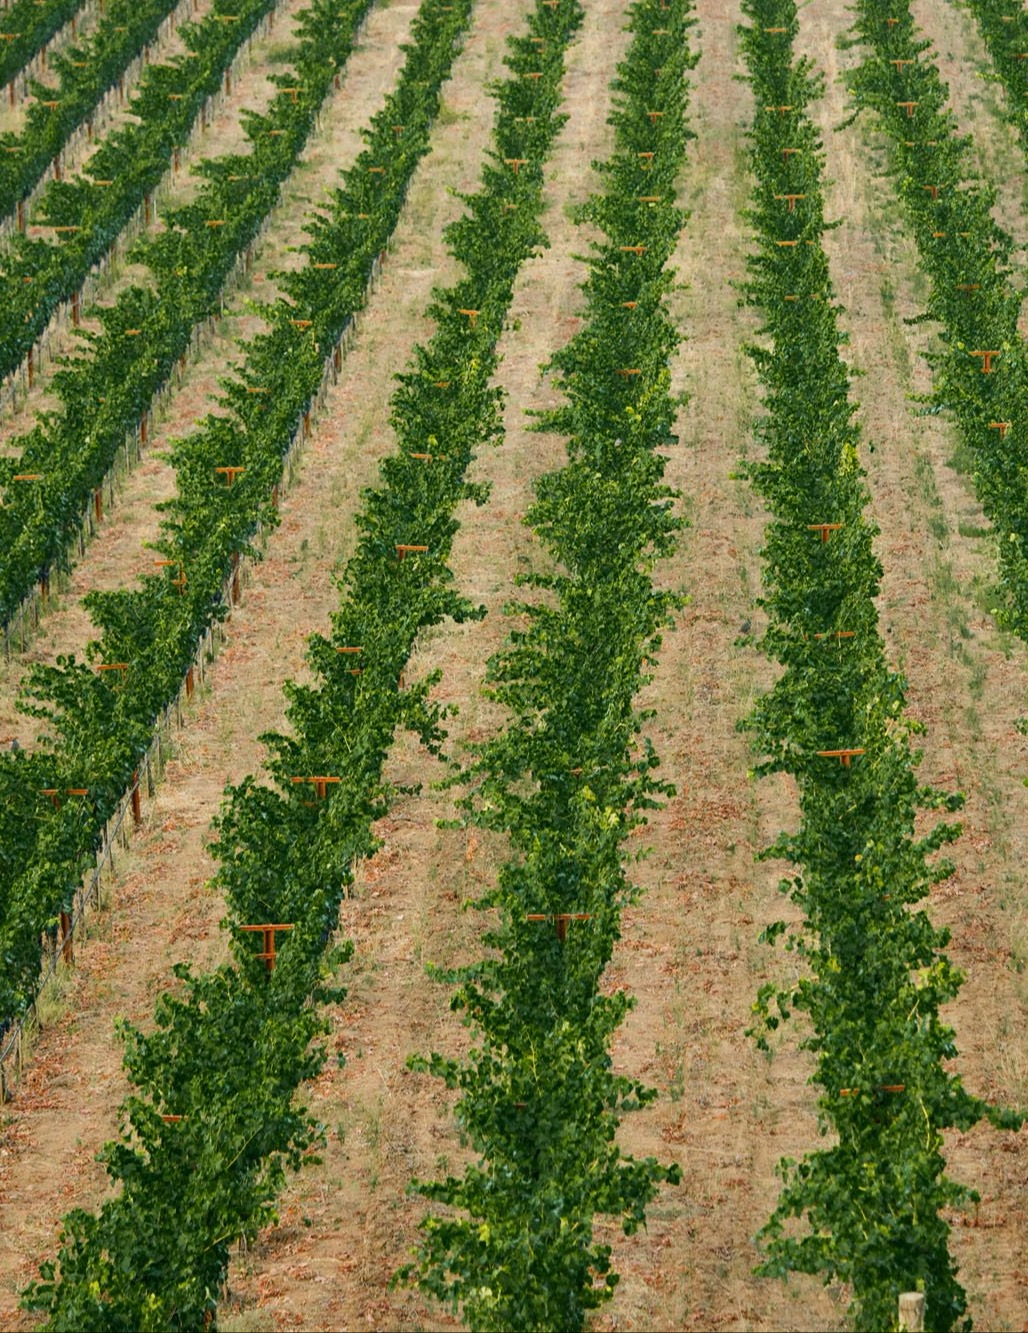 Aerial view of the rows in the vineyard